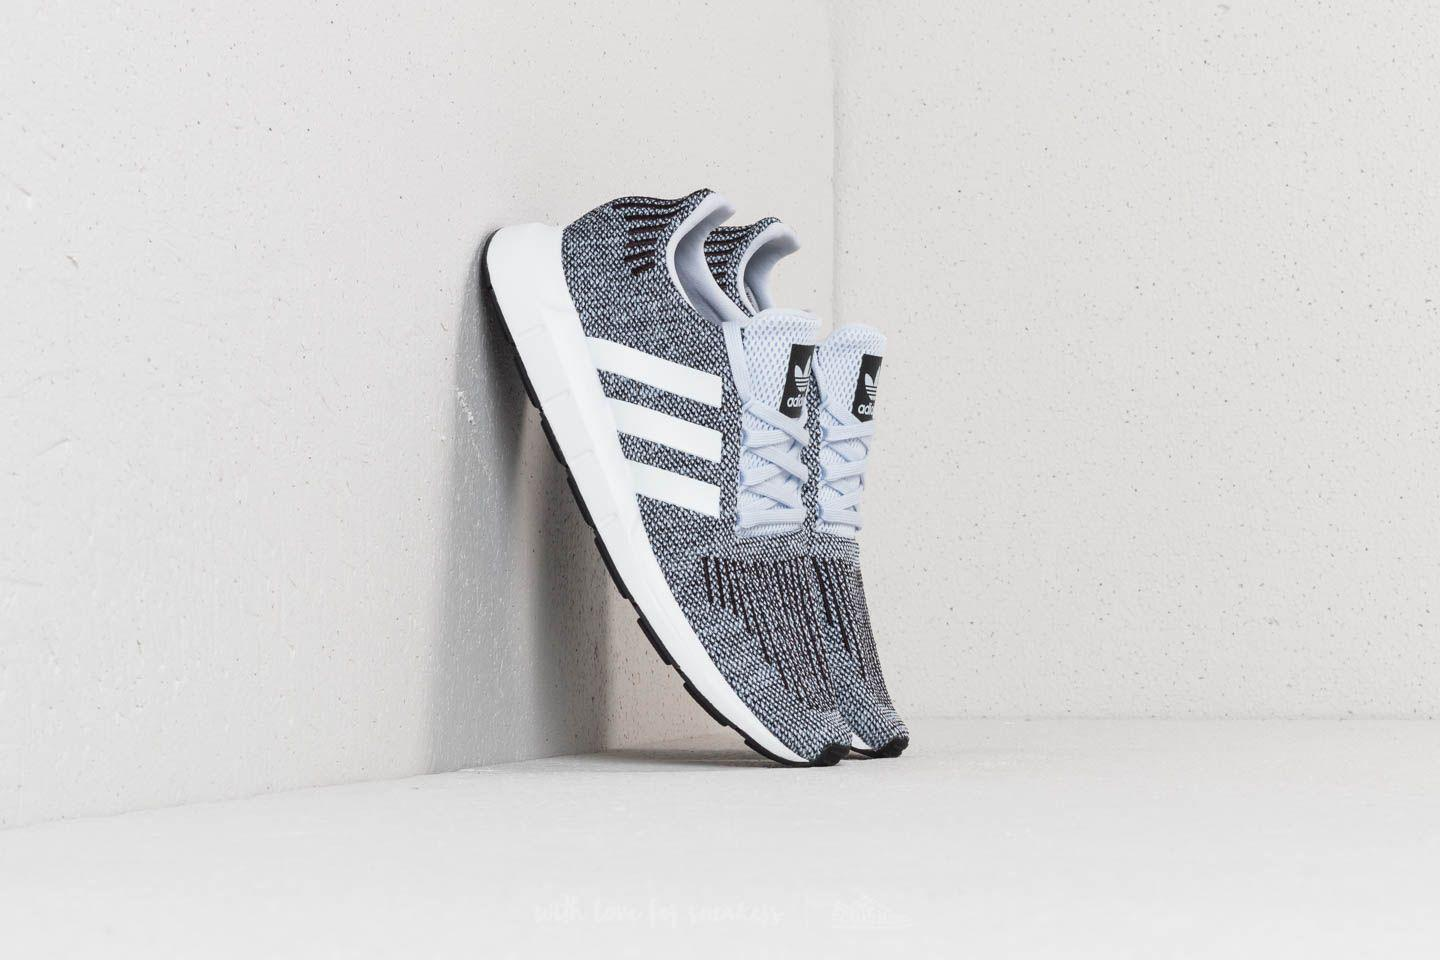 0d68b0ab8b9ef Aero Blue Lyst White Core Run Adidas Ftw Swift Originals qqwIPZ